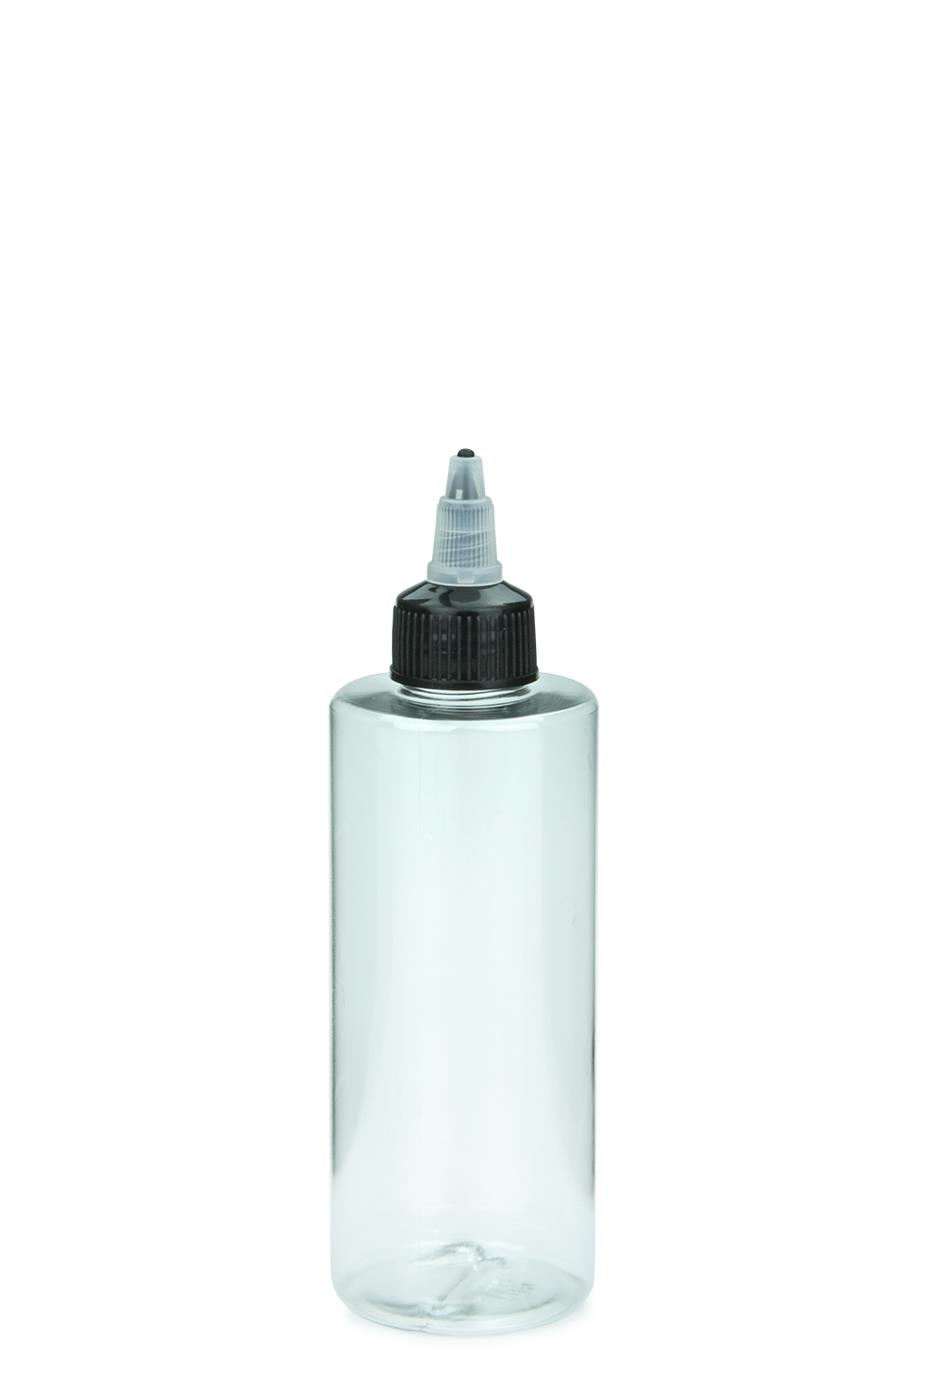 5963cb31bcf6 PET cosmetic bottle LEONORA 200 ml clear with with twist top cap  natural/black 24/410